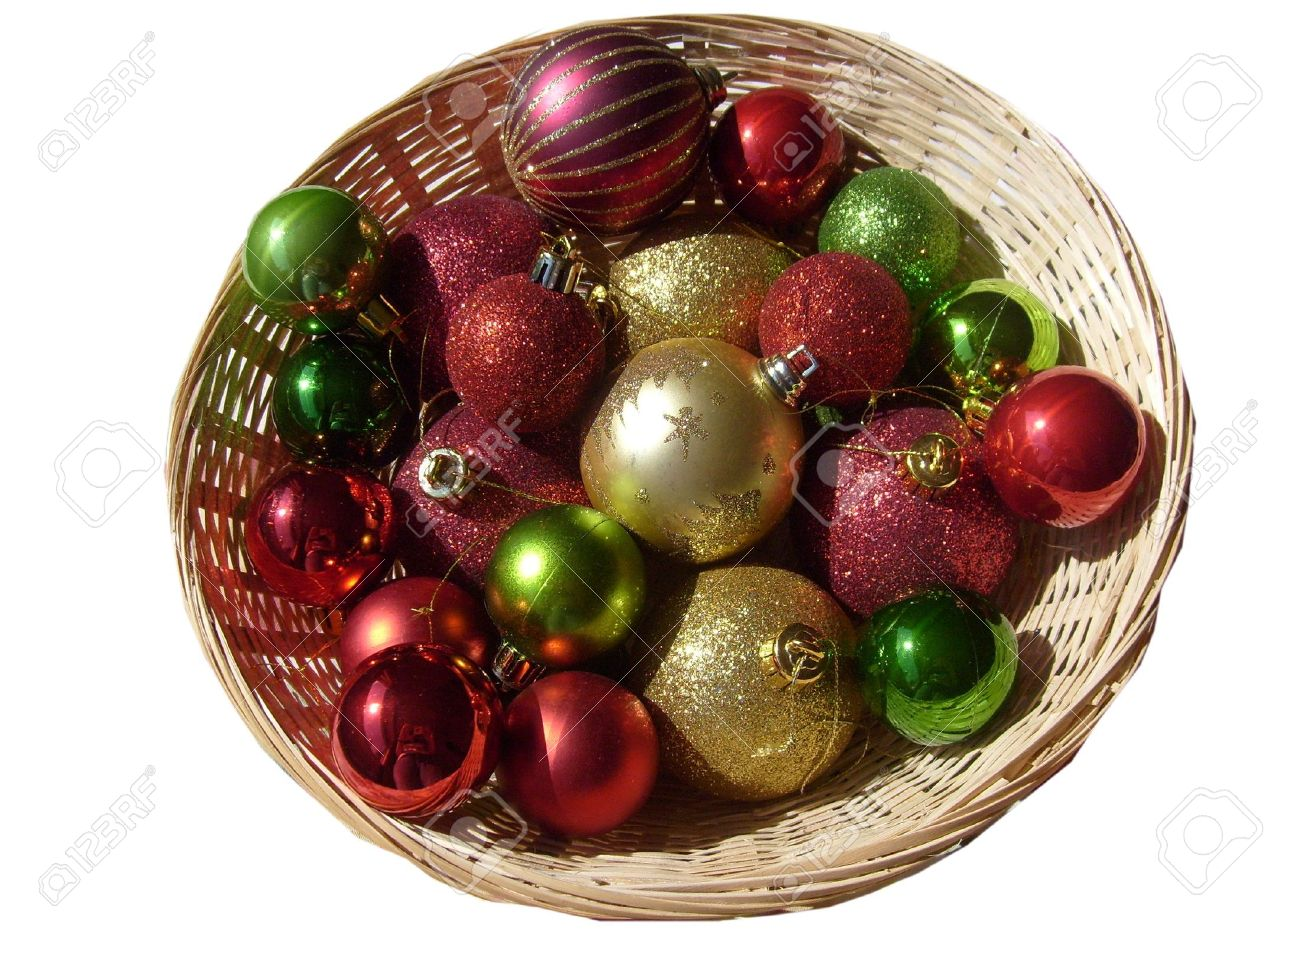 Christmas tree decorations red and green - Basket Of Red Gold And Green Christmas Tree Decorations Baubles Stock Photo 3376577